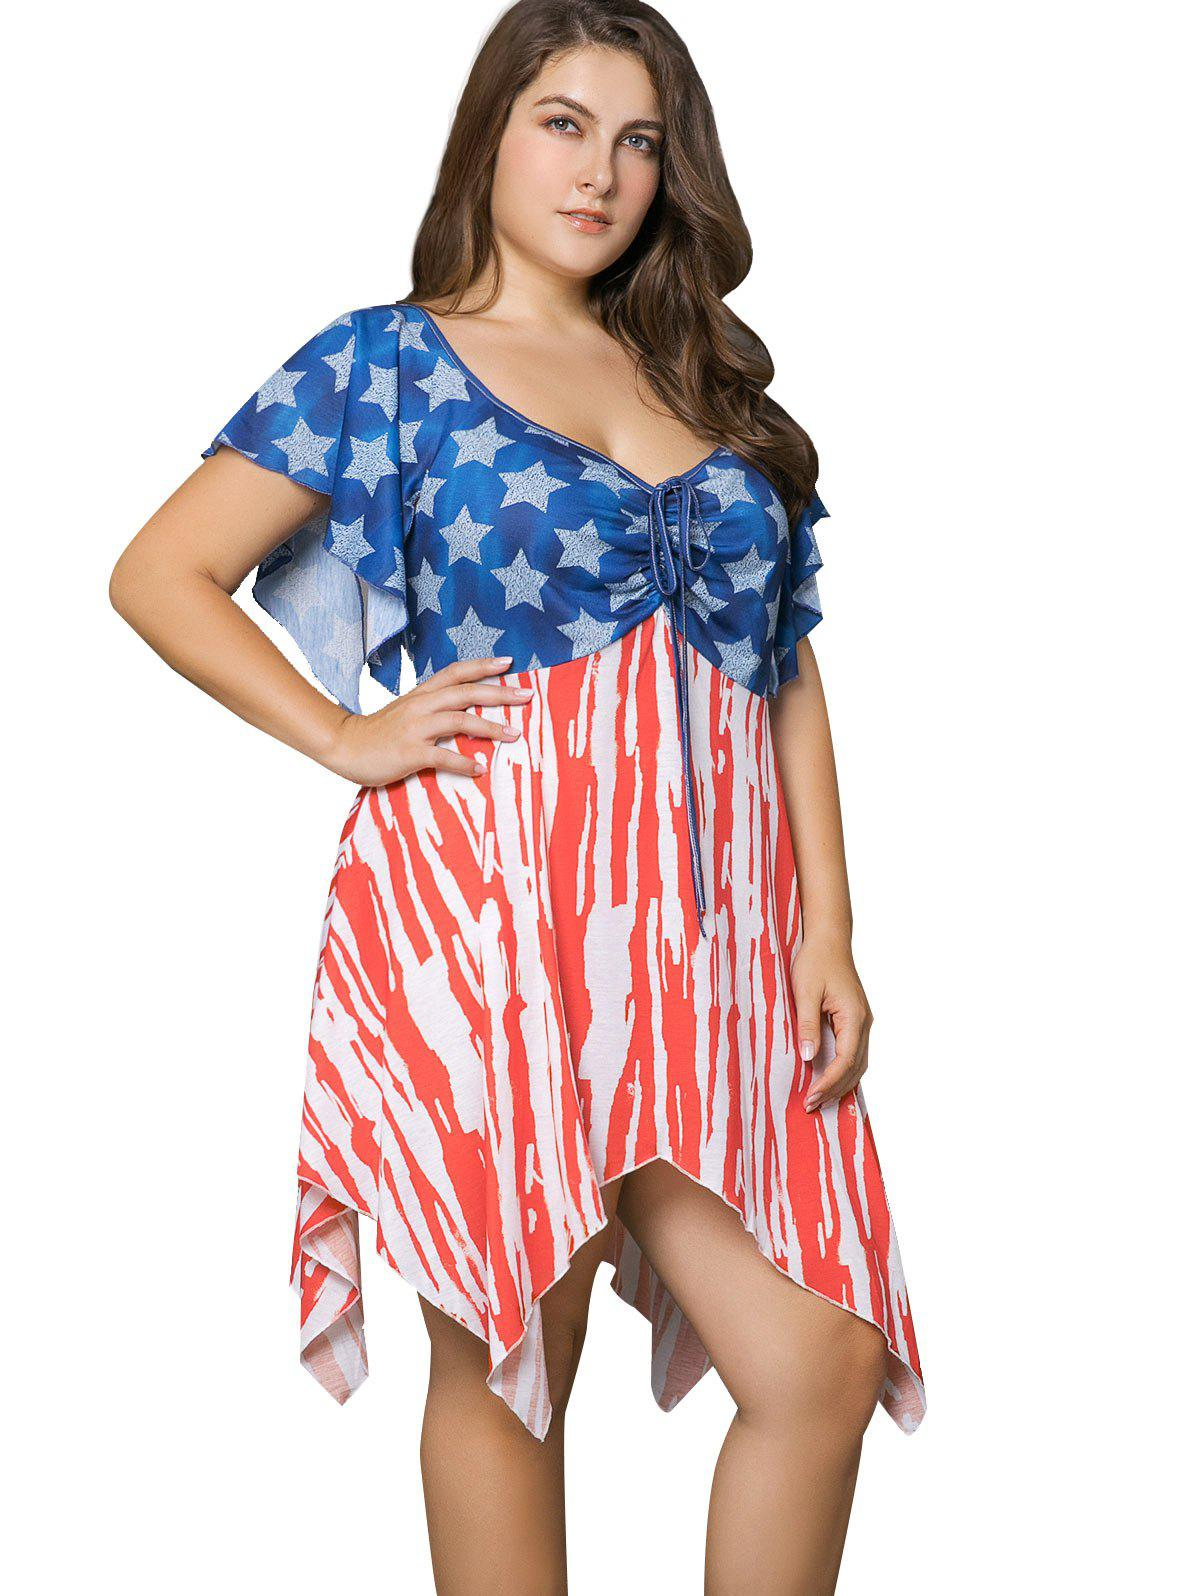 Buy sexy plus size clothing at tokosepatu.ga Check out the Cheap trendy plus size clothing for women, shop now!